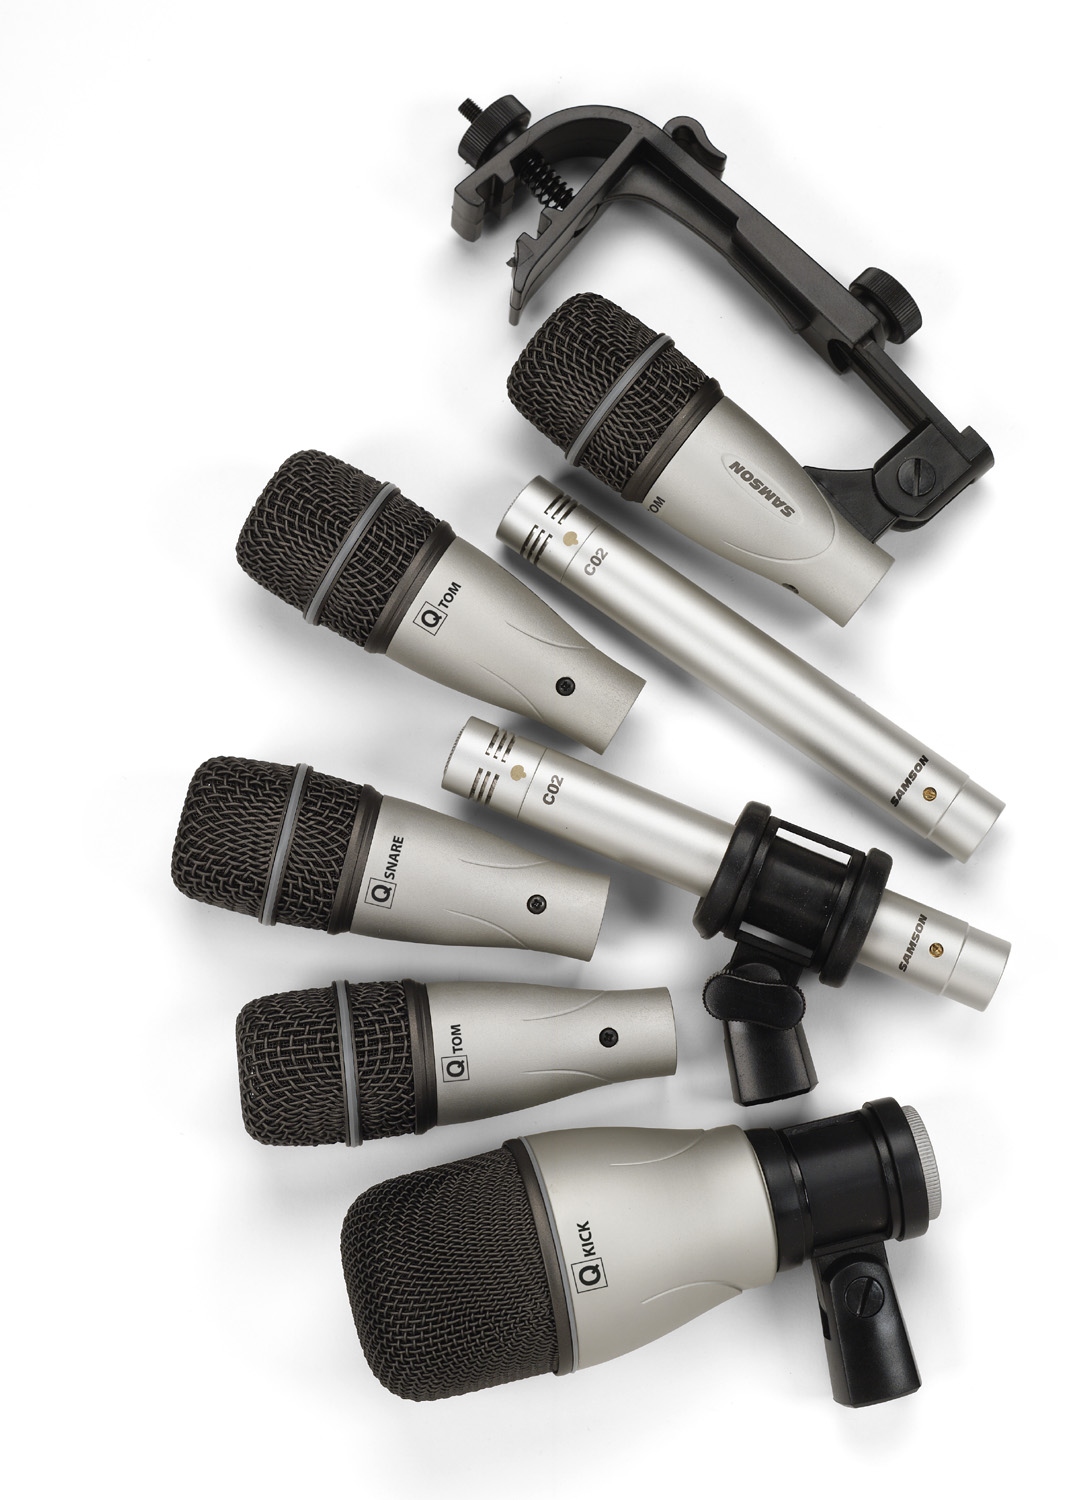 SAMSON 7KIT MICROPHONE